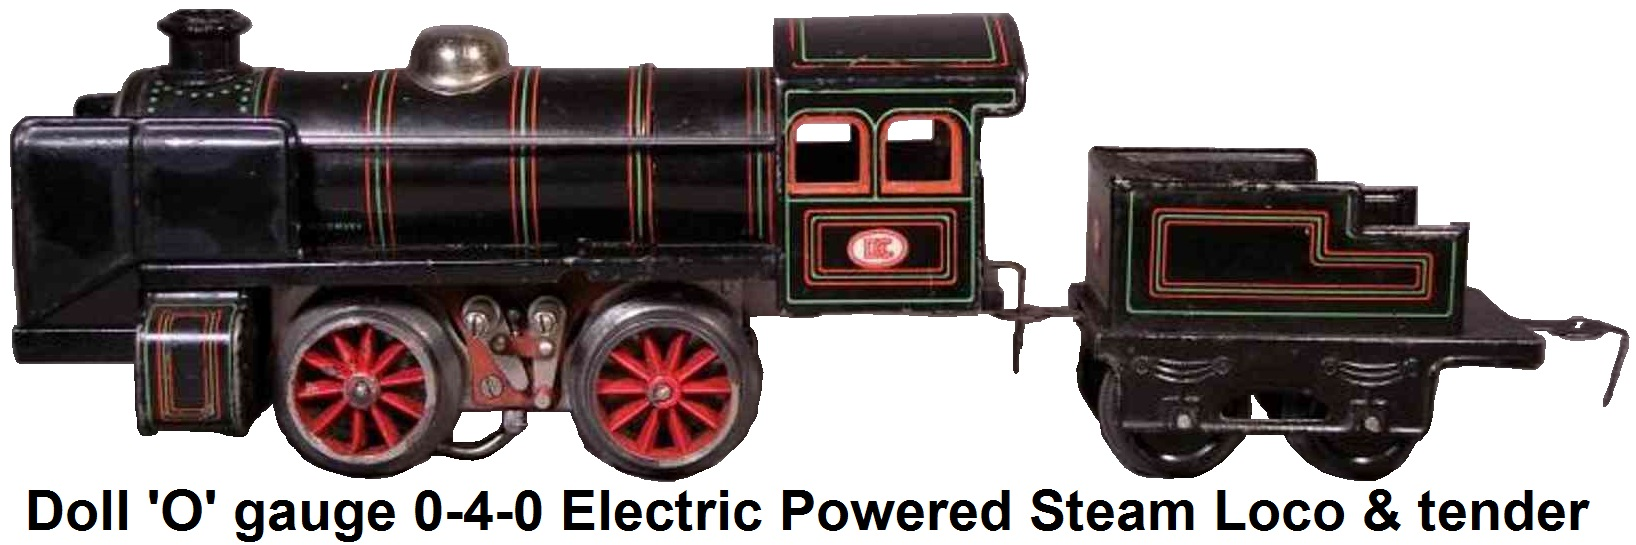 Doll et Cie. 'O' gauge 0-4-0 Electric powered Steam Outline loco